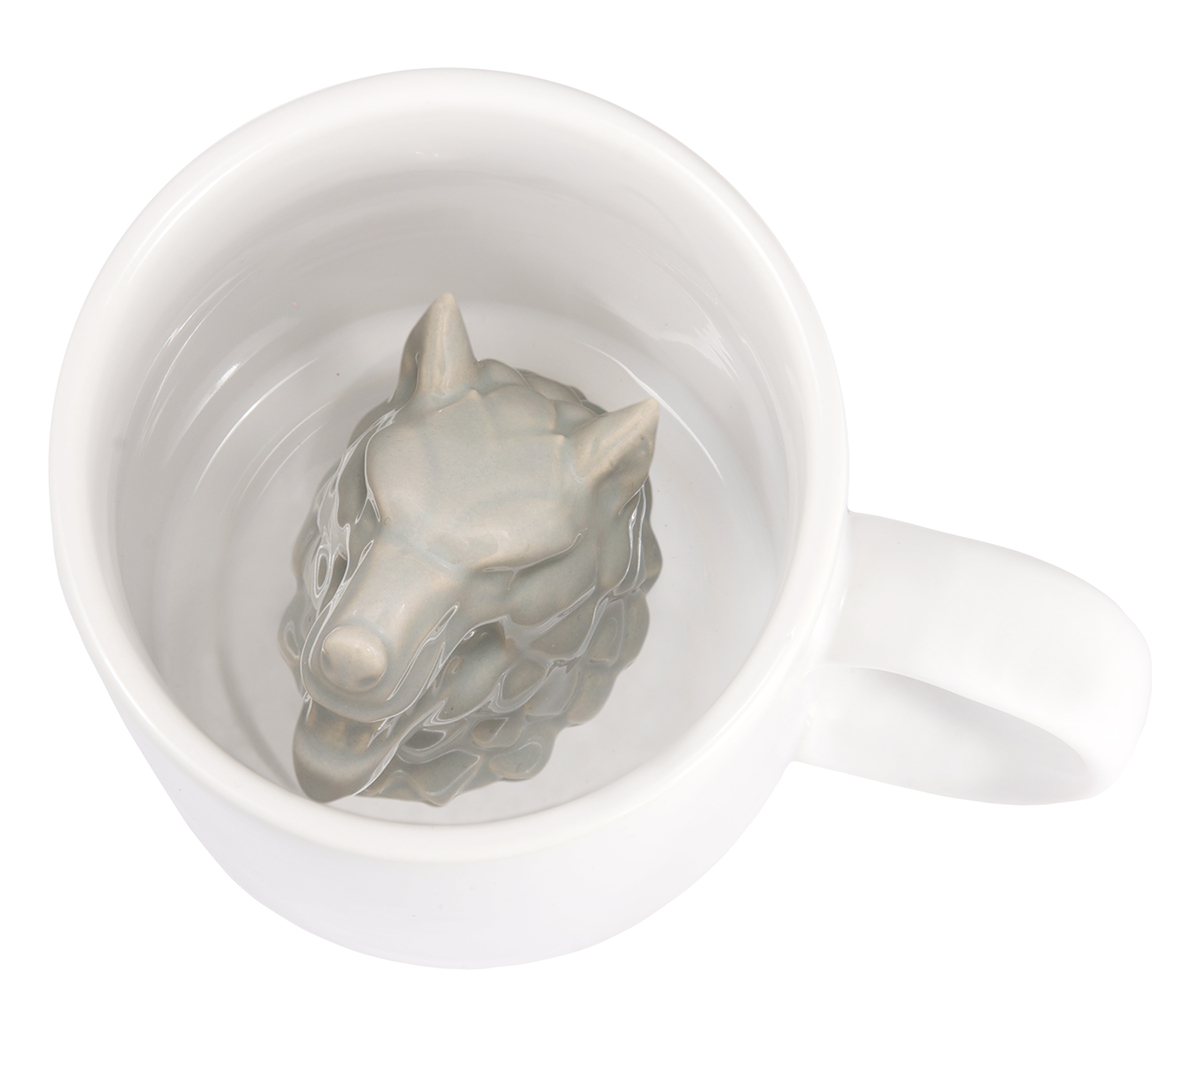 GAME OF THRONES STARK WOLF SCULPTED MUG